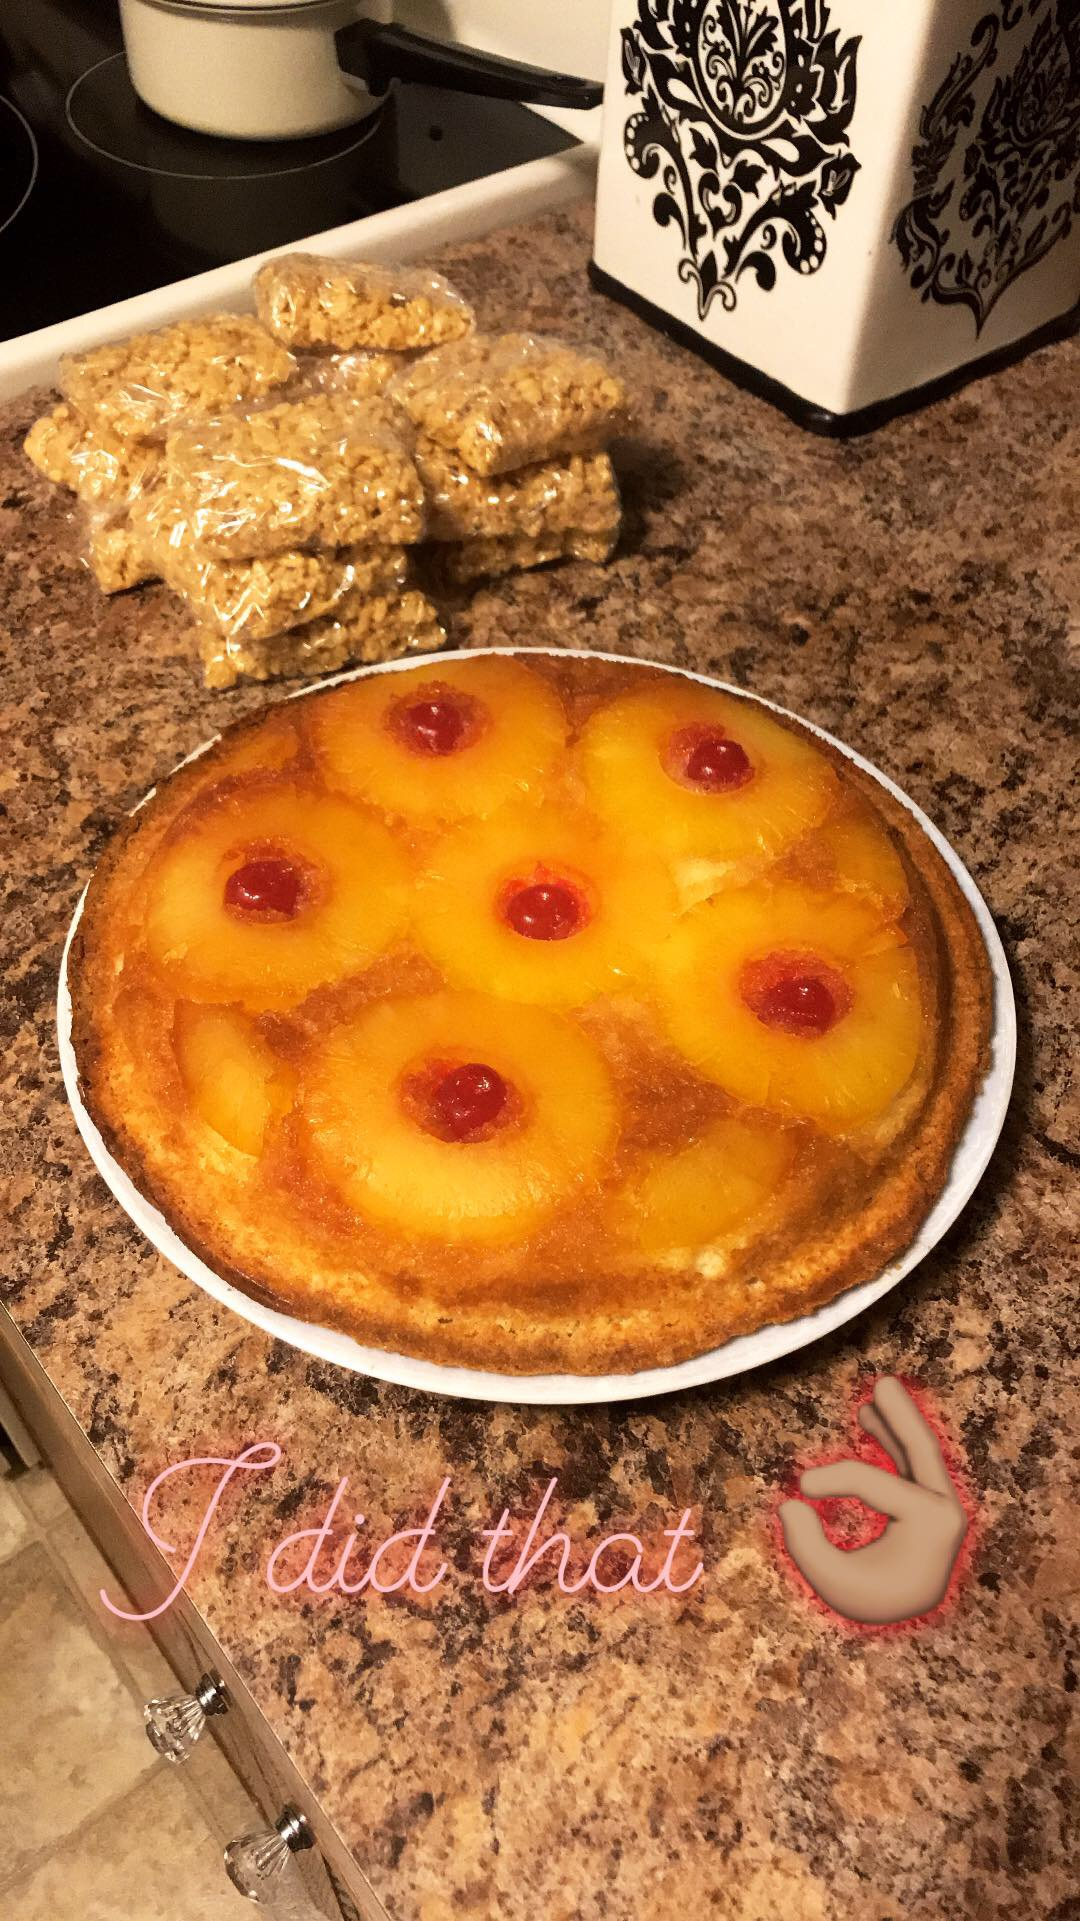 Pineapple Upside Down Cake from DOLE®